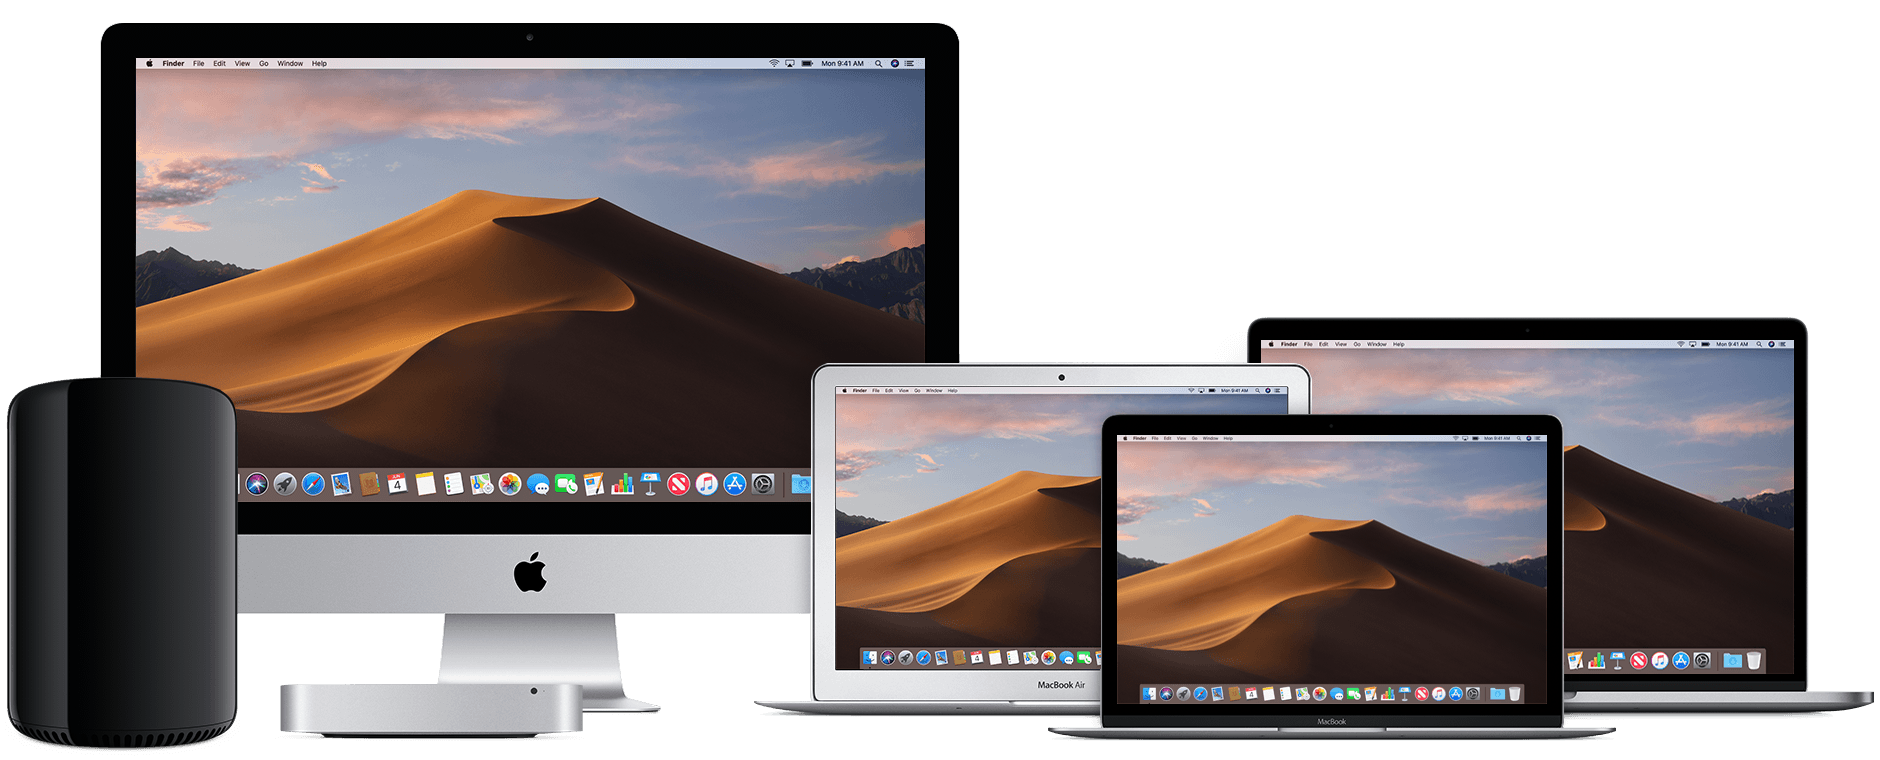 Jasa Instal Macbook Mac Mojave High Sierra